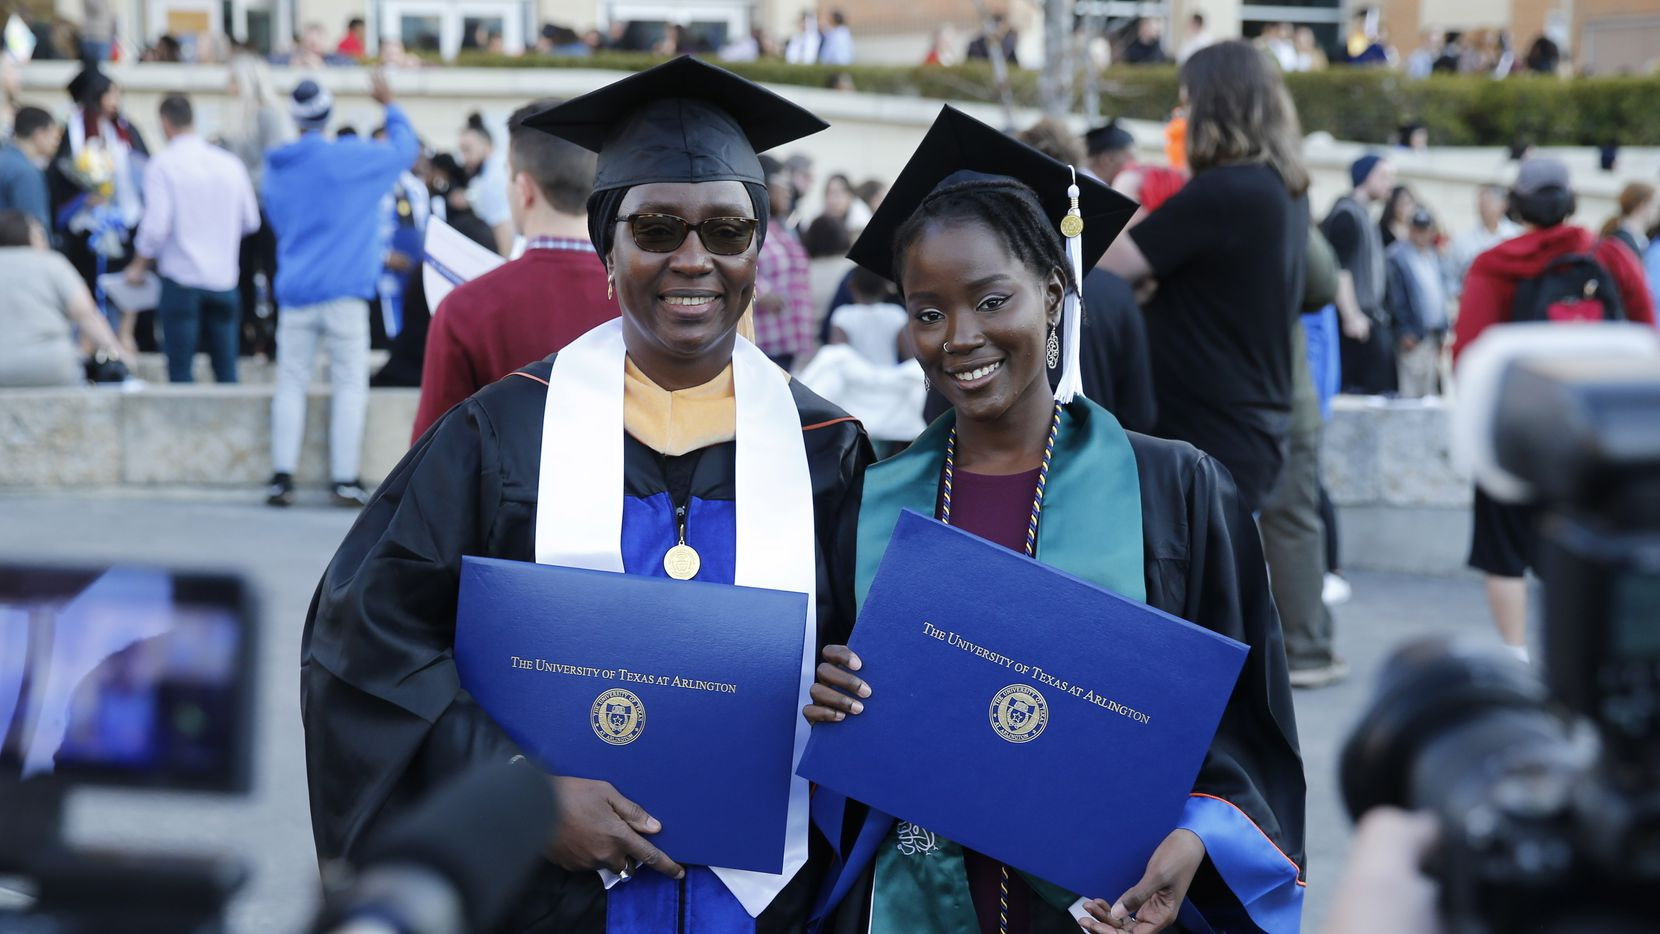 Ndeye Ndaw and daughter Awa Sy pose for a photo together outside College Park Center at the University of Texas at Arlington shortly after graduation ceremonies in 2019.  Ndeye earned a master's degree and her daughter Awa earned her bachelor's degree on the same day.